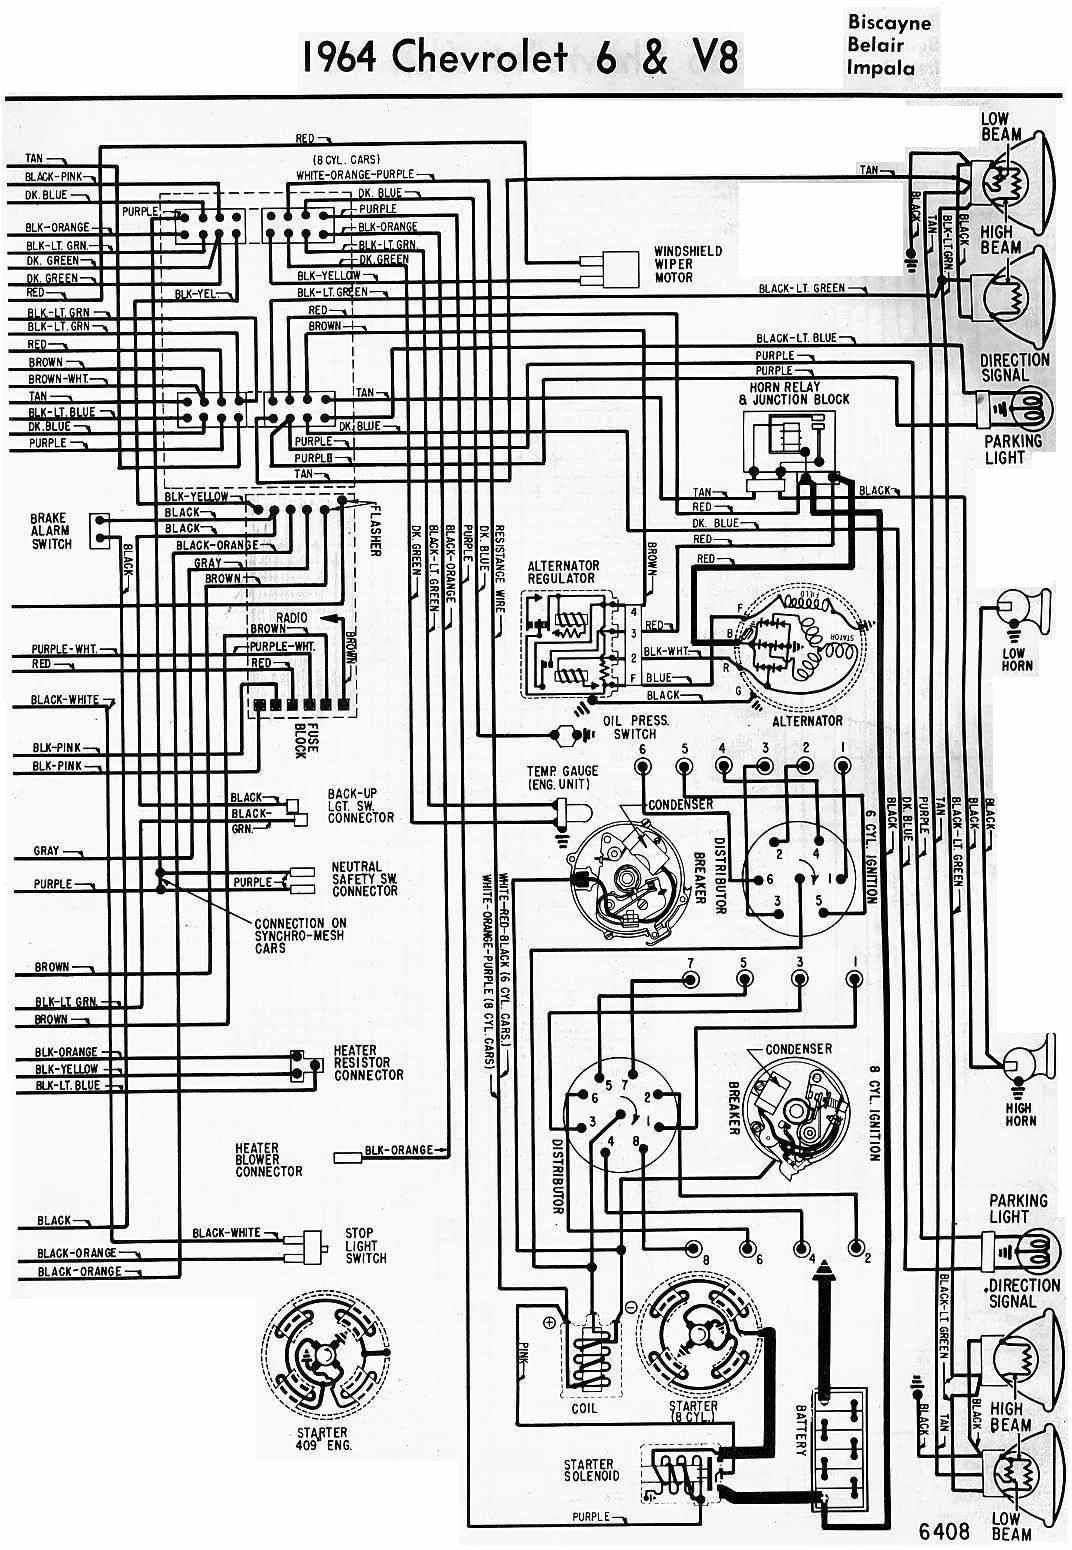 1964 corvair fuse box wiring diagram centre1964 corvair wiring diagram wiring diagrams konsult1964 corvair fuse box [ 1072 x 1550 Pixel ]